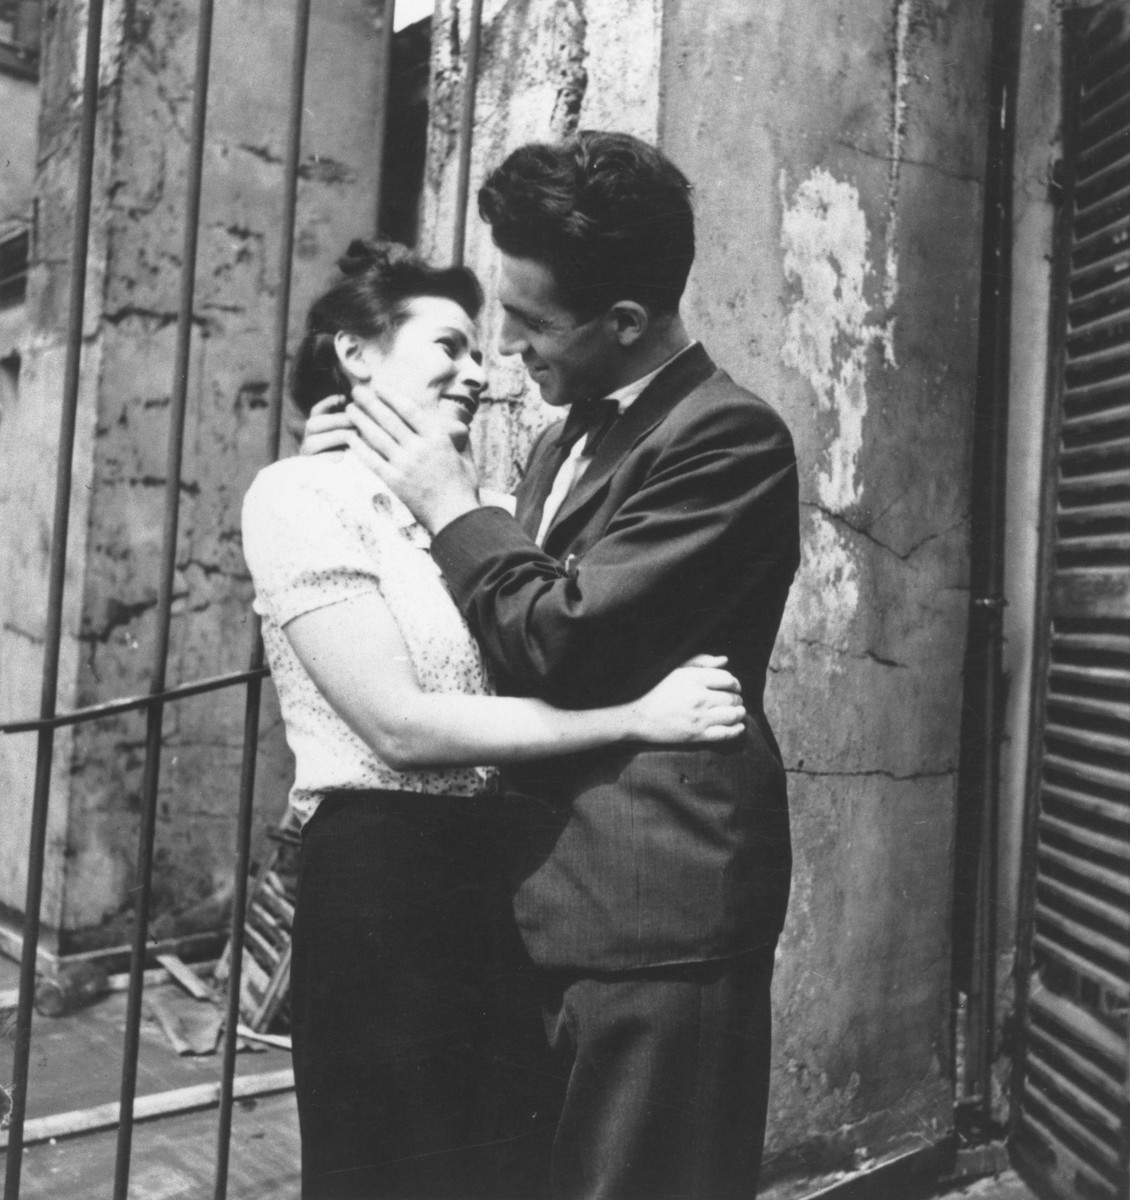 """Bill Freier (Willi Spira) embraces his fiancee, Mina.  The caption on the verso of the photograph reads, """"Bill Spira with his beloved Mina."""""""